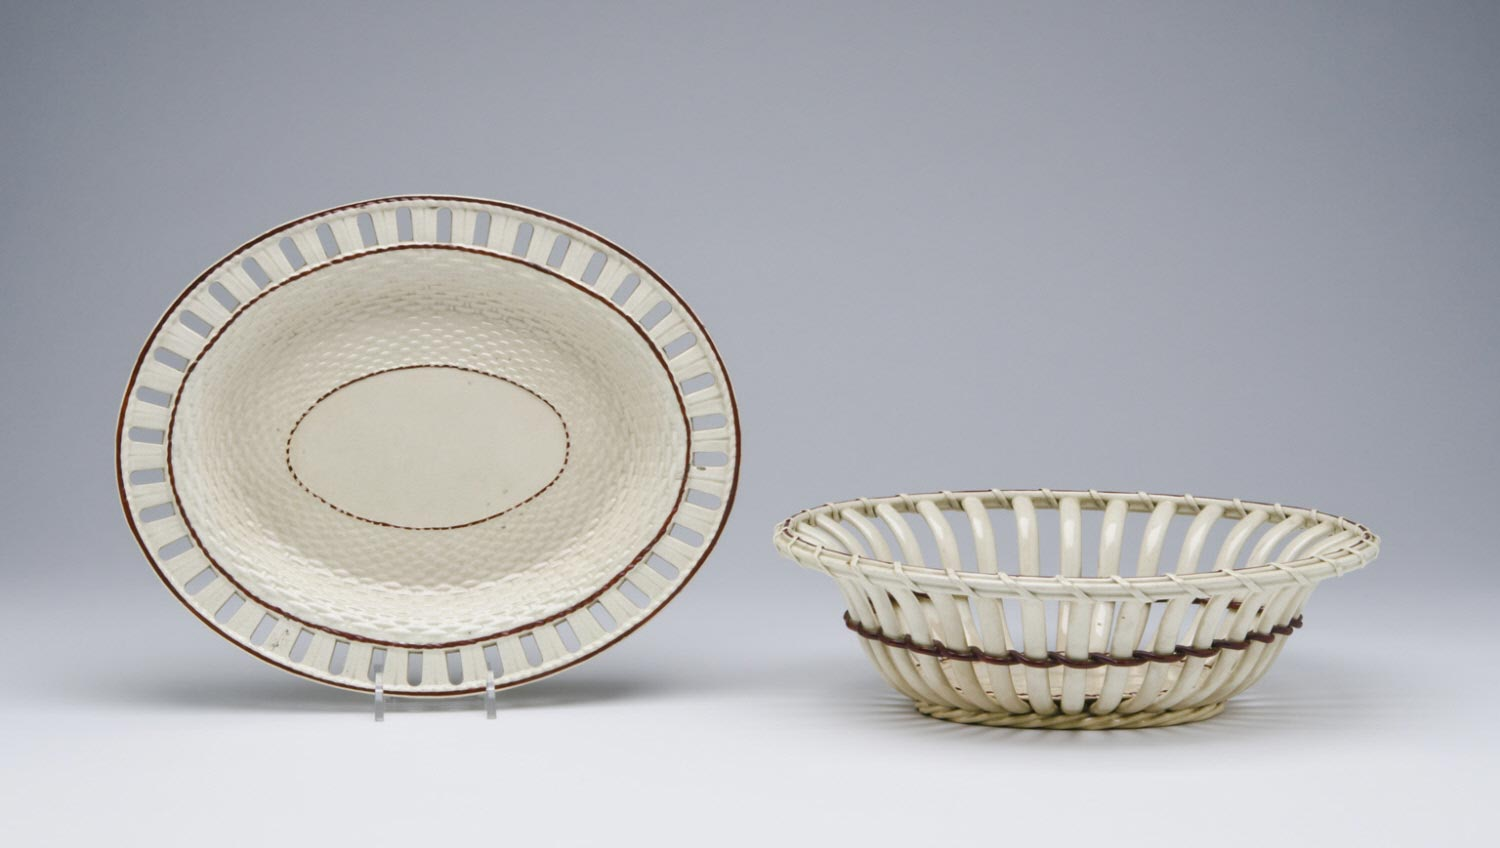 Basket and Tray